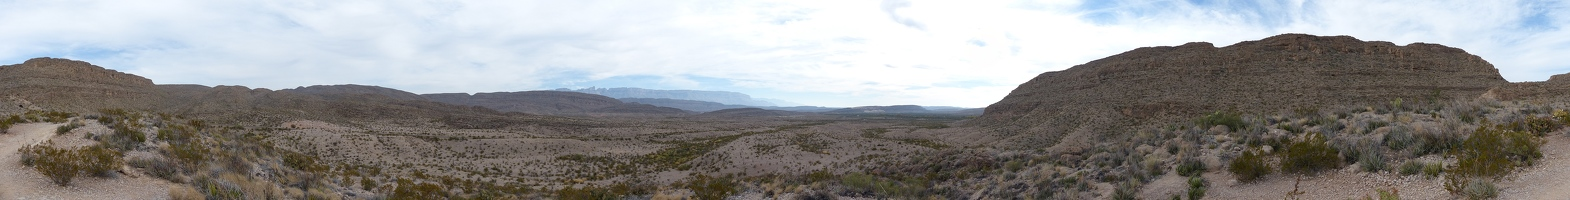 Rio Grande Overlook panoramic